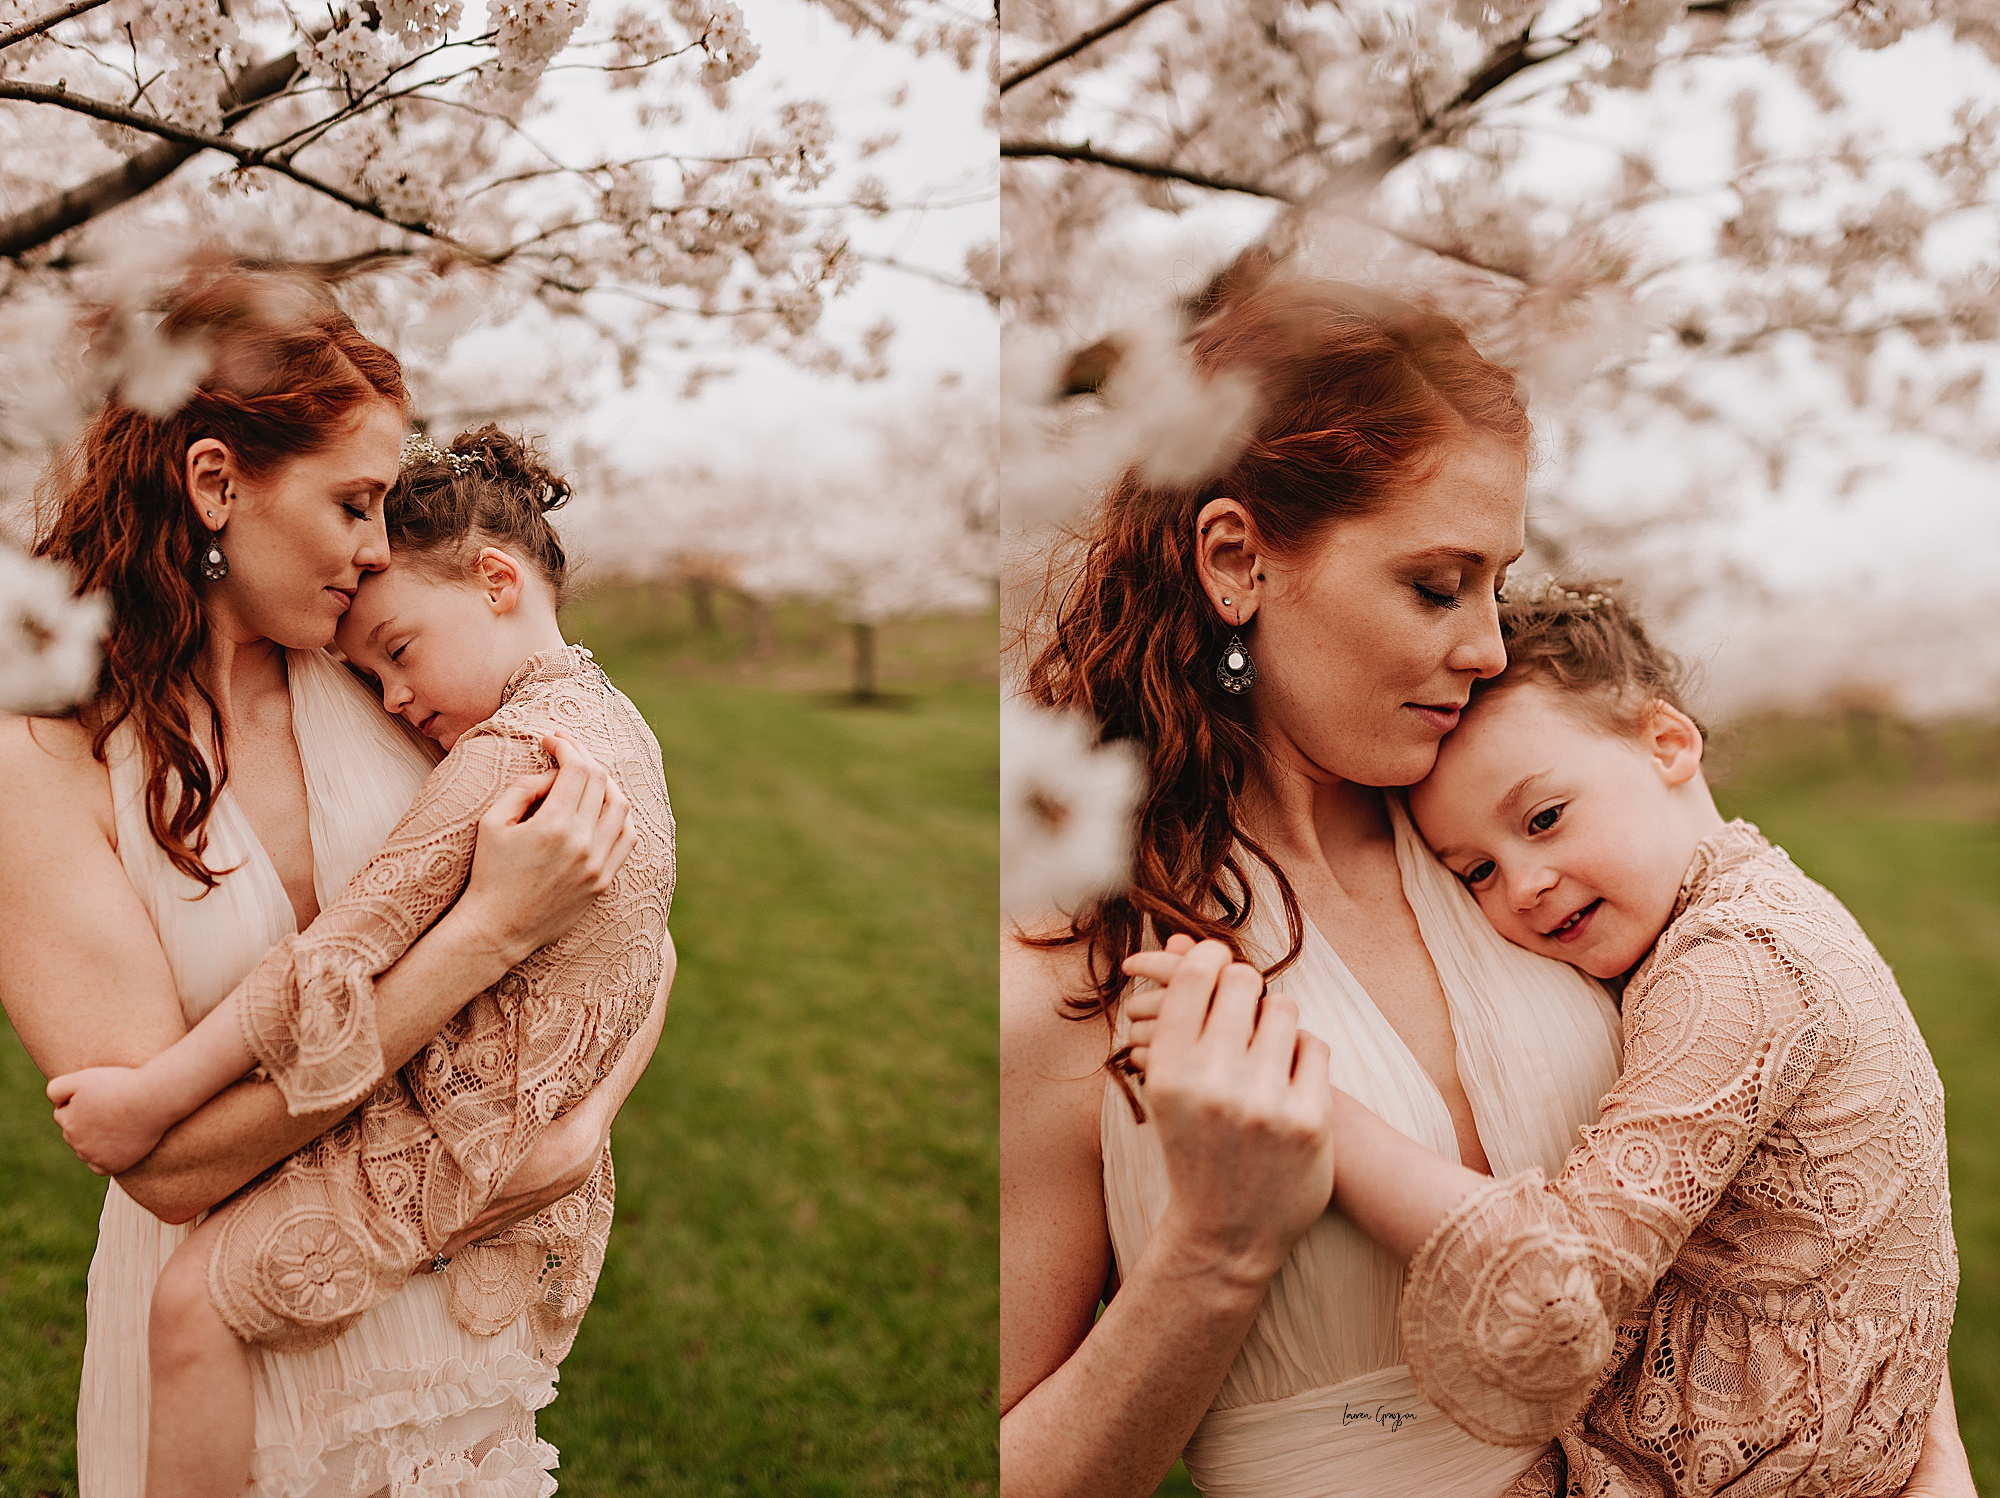 lauren-grayson-photography-cleveland-ohio-motherhood-family-child-photo-session-cherry-blossoms_0026.jpg